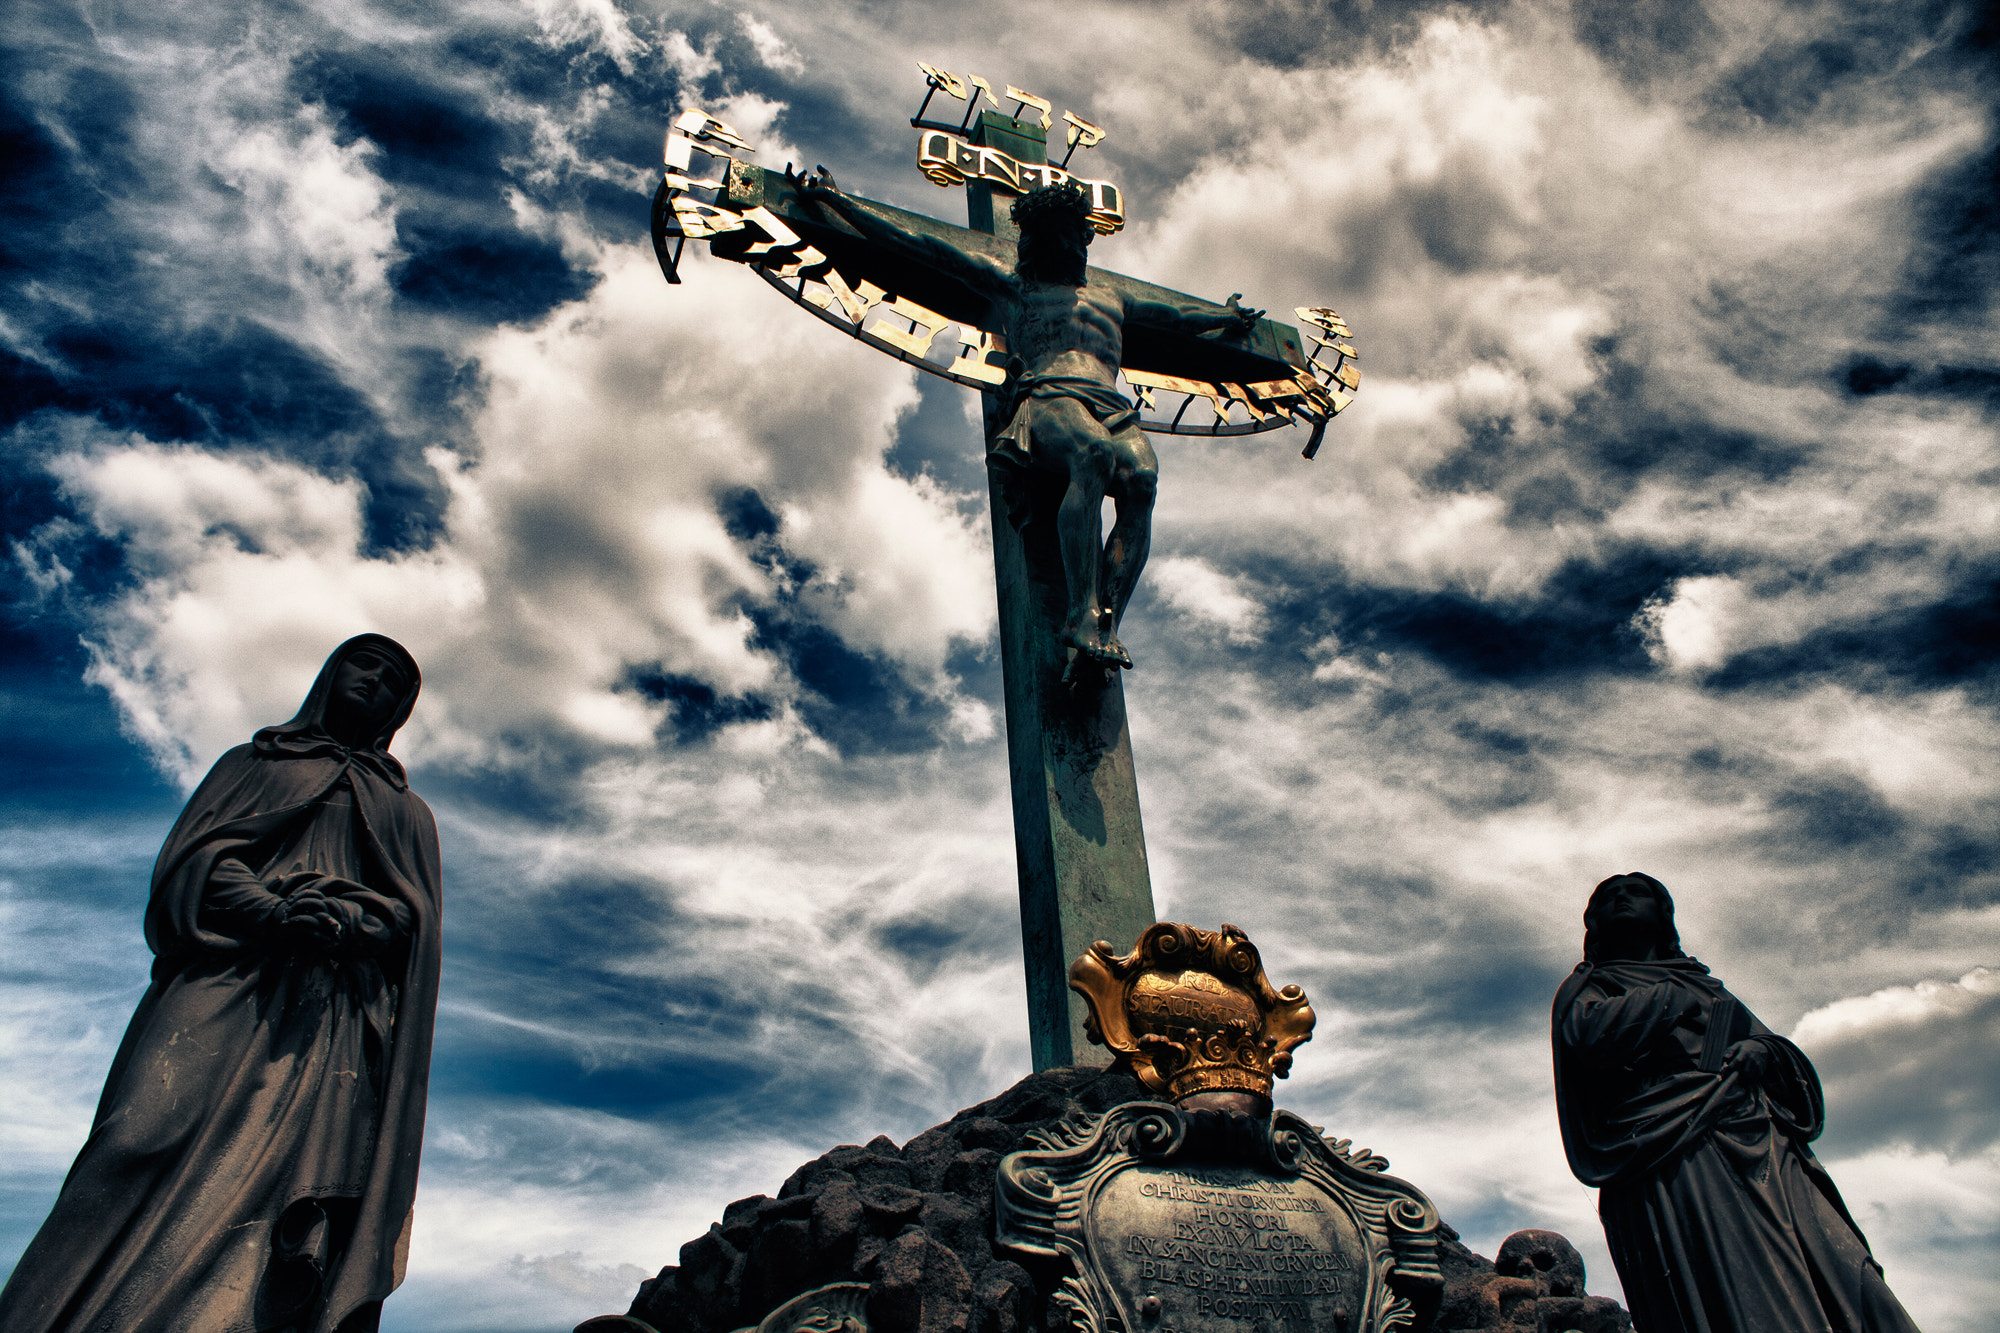 Photograph Christ damaged by Seyhan Gungor on 500px